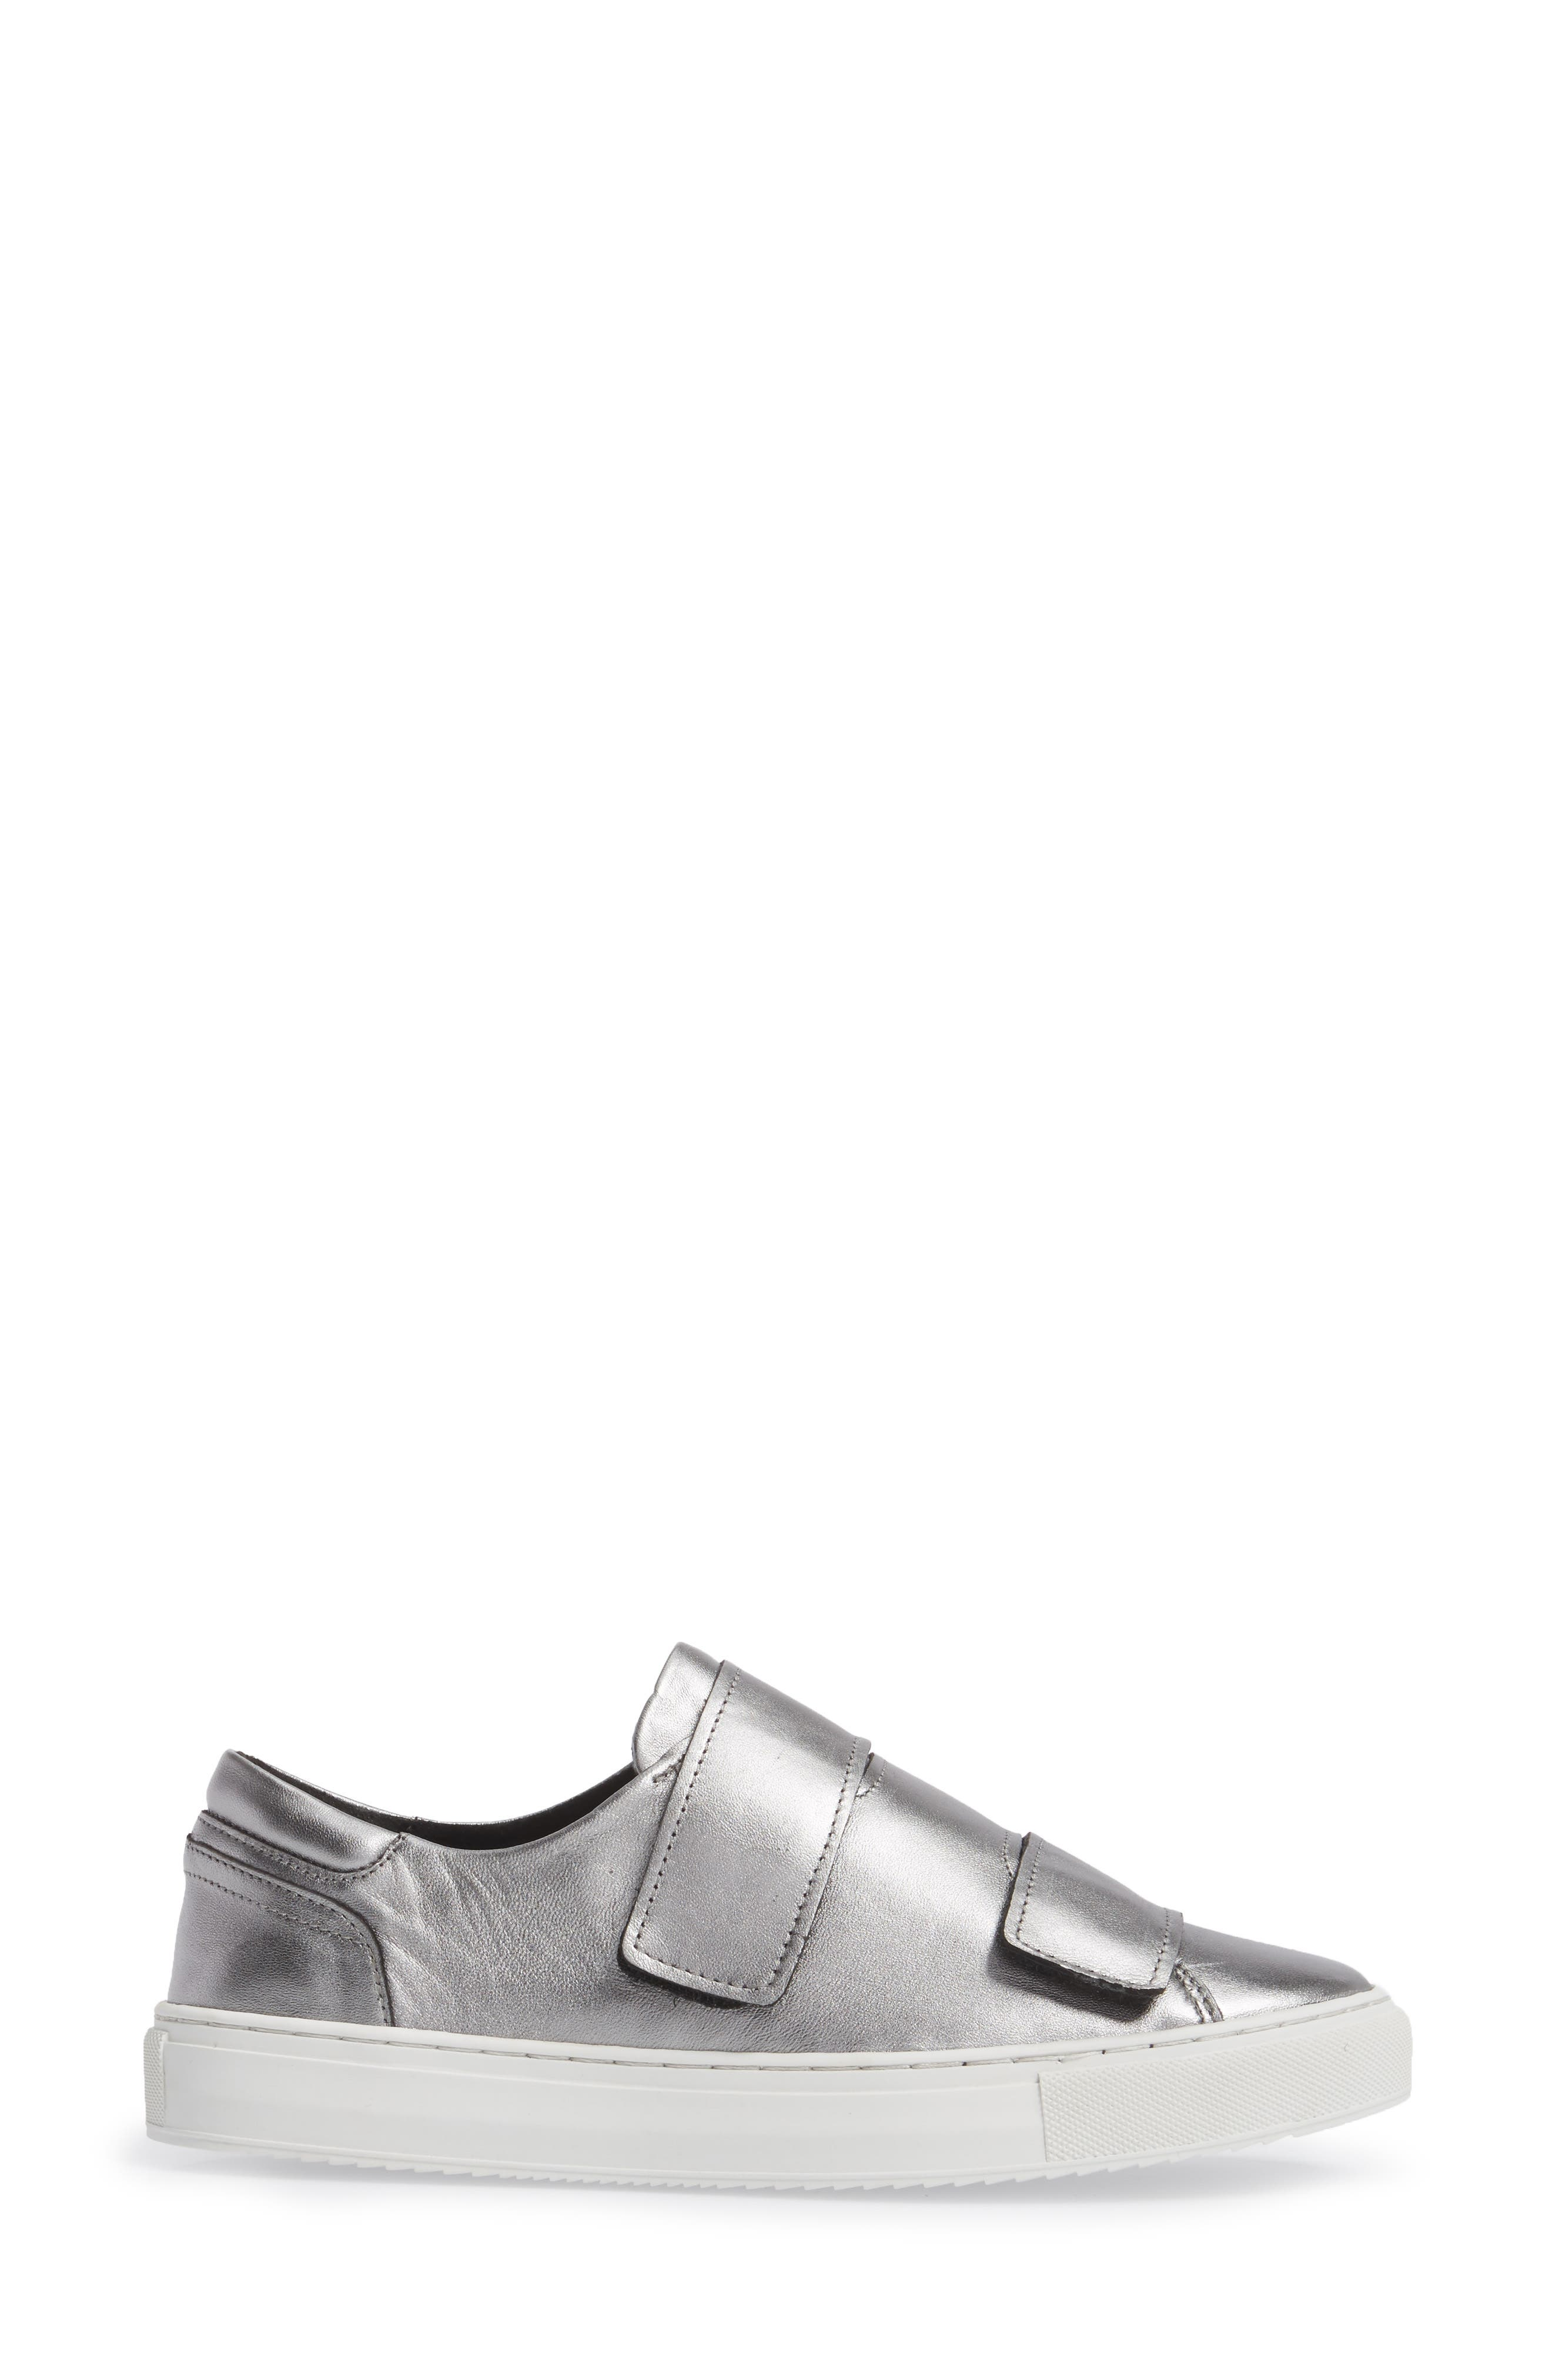 Rollover Alternating Strap Sneaker,                             Alternate thumbnail 3, color,                             Pewter Leather